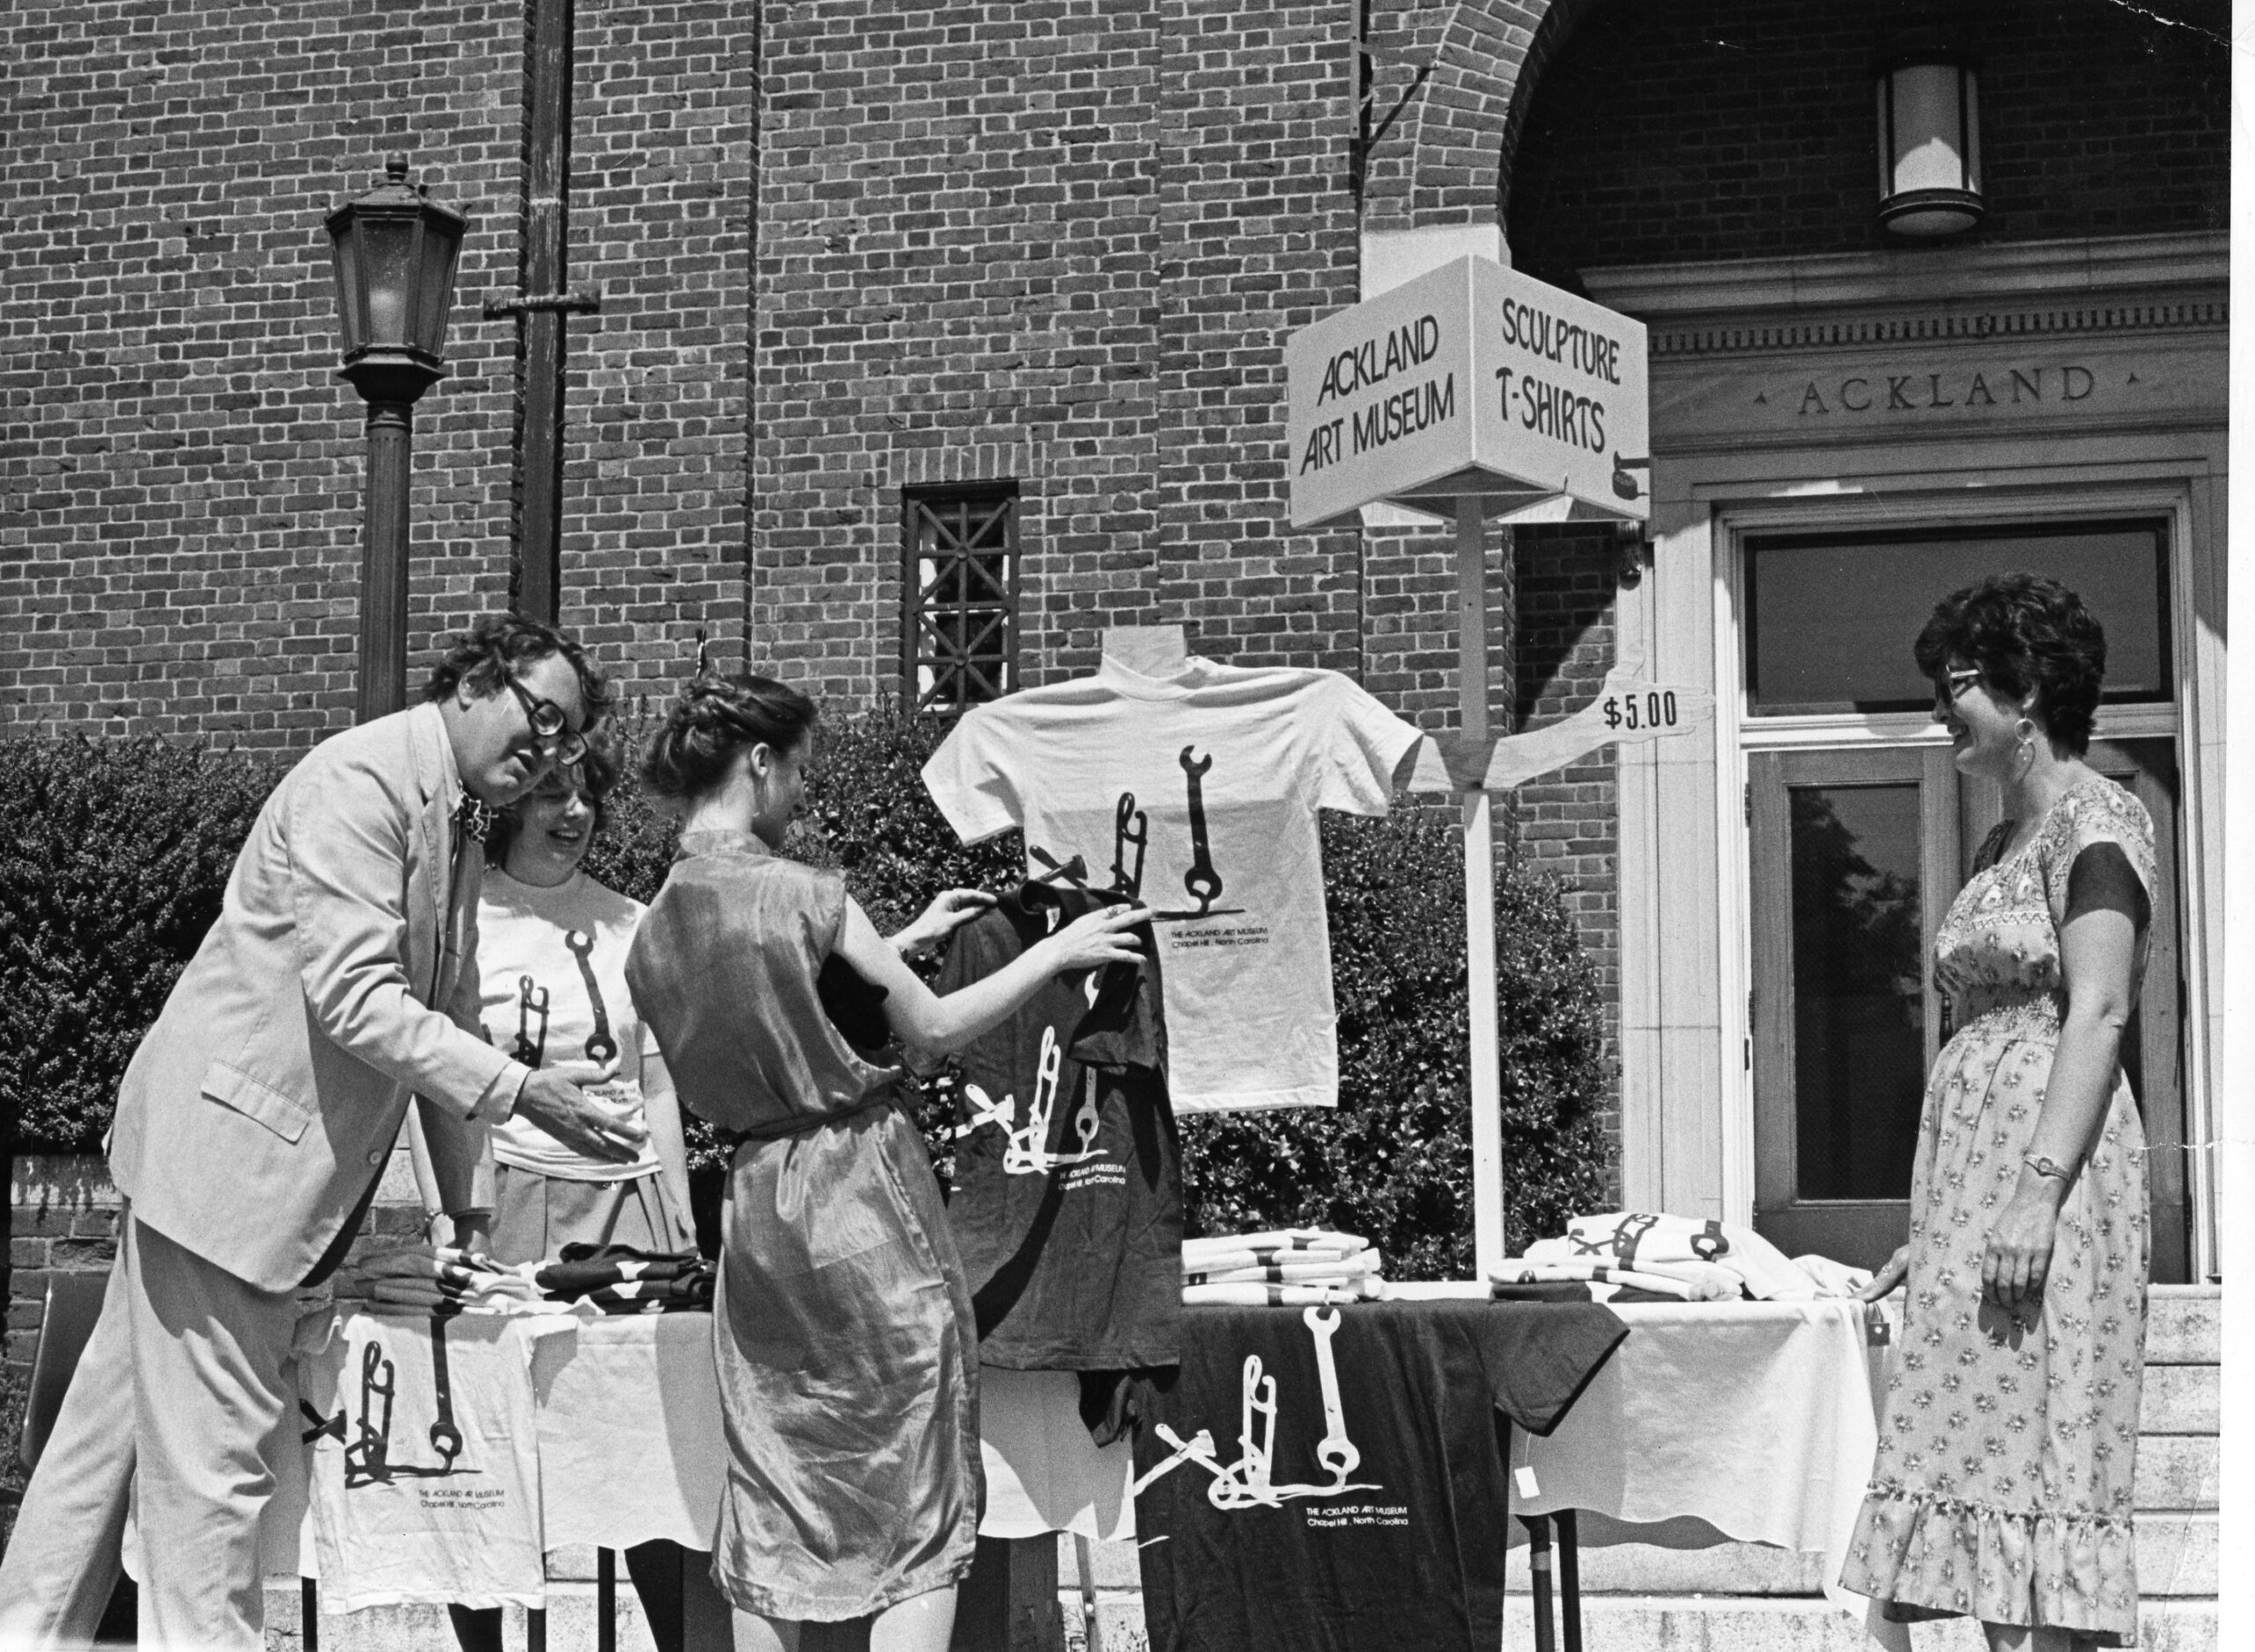 A group of four people looking at t-shirts on a table outdoors